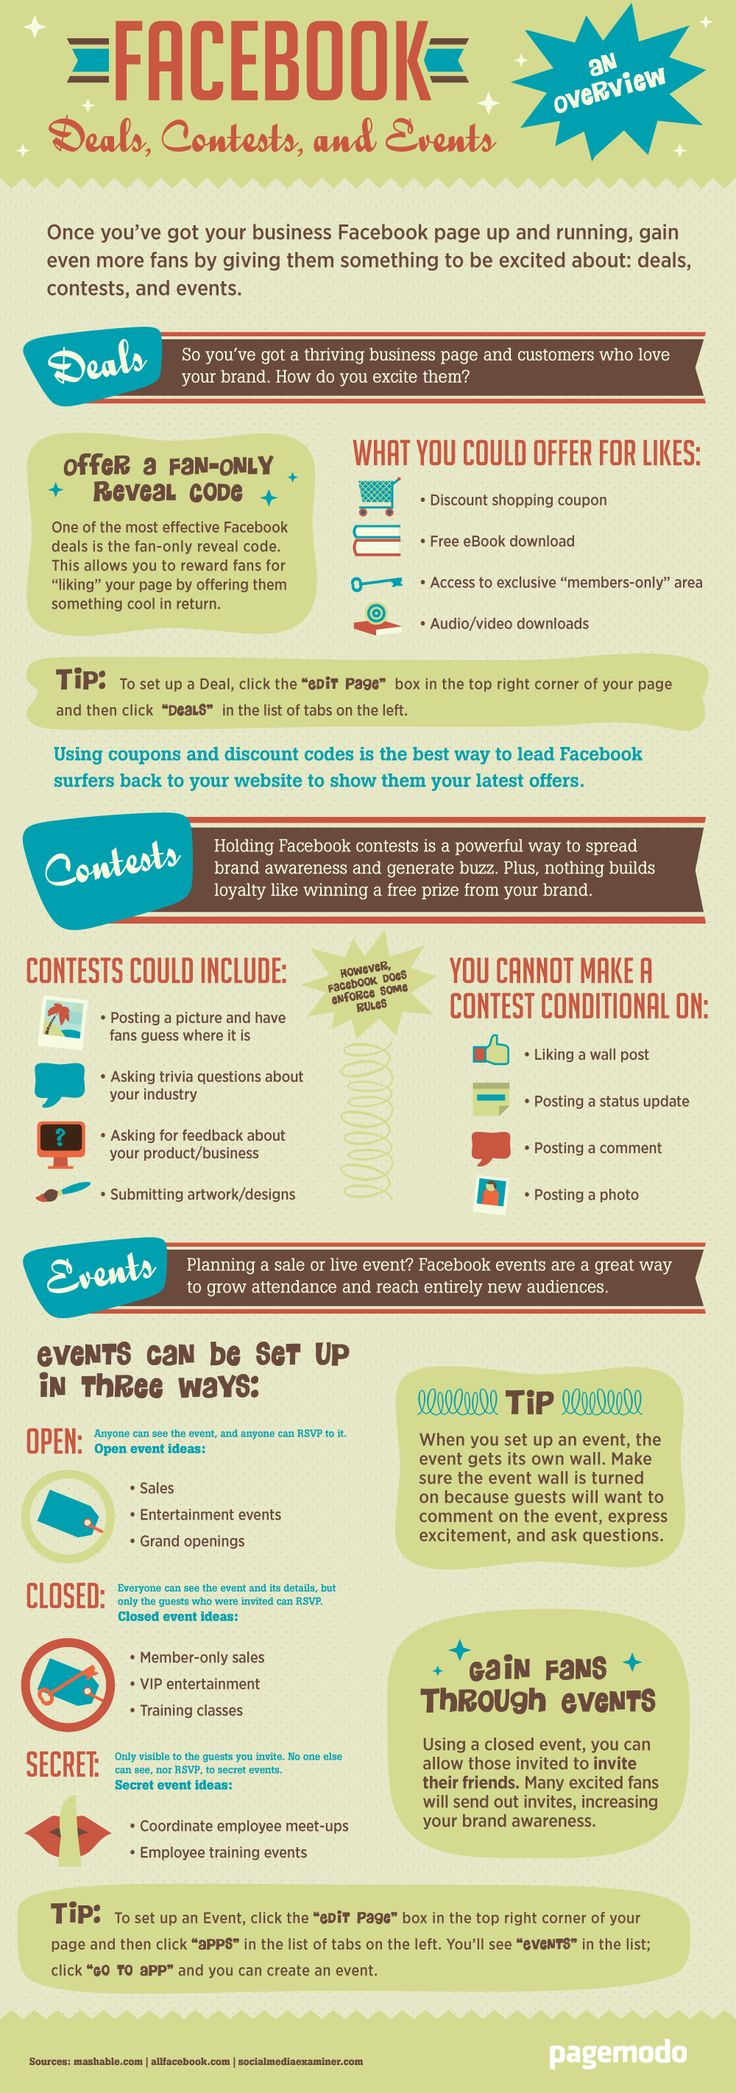 Facebook Deals, Contests, and Events Tips [Infographic]